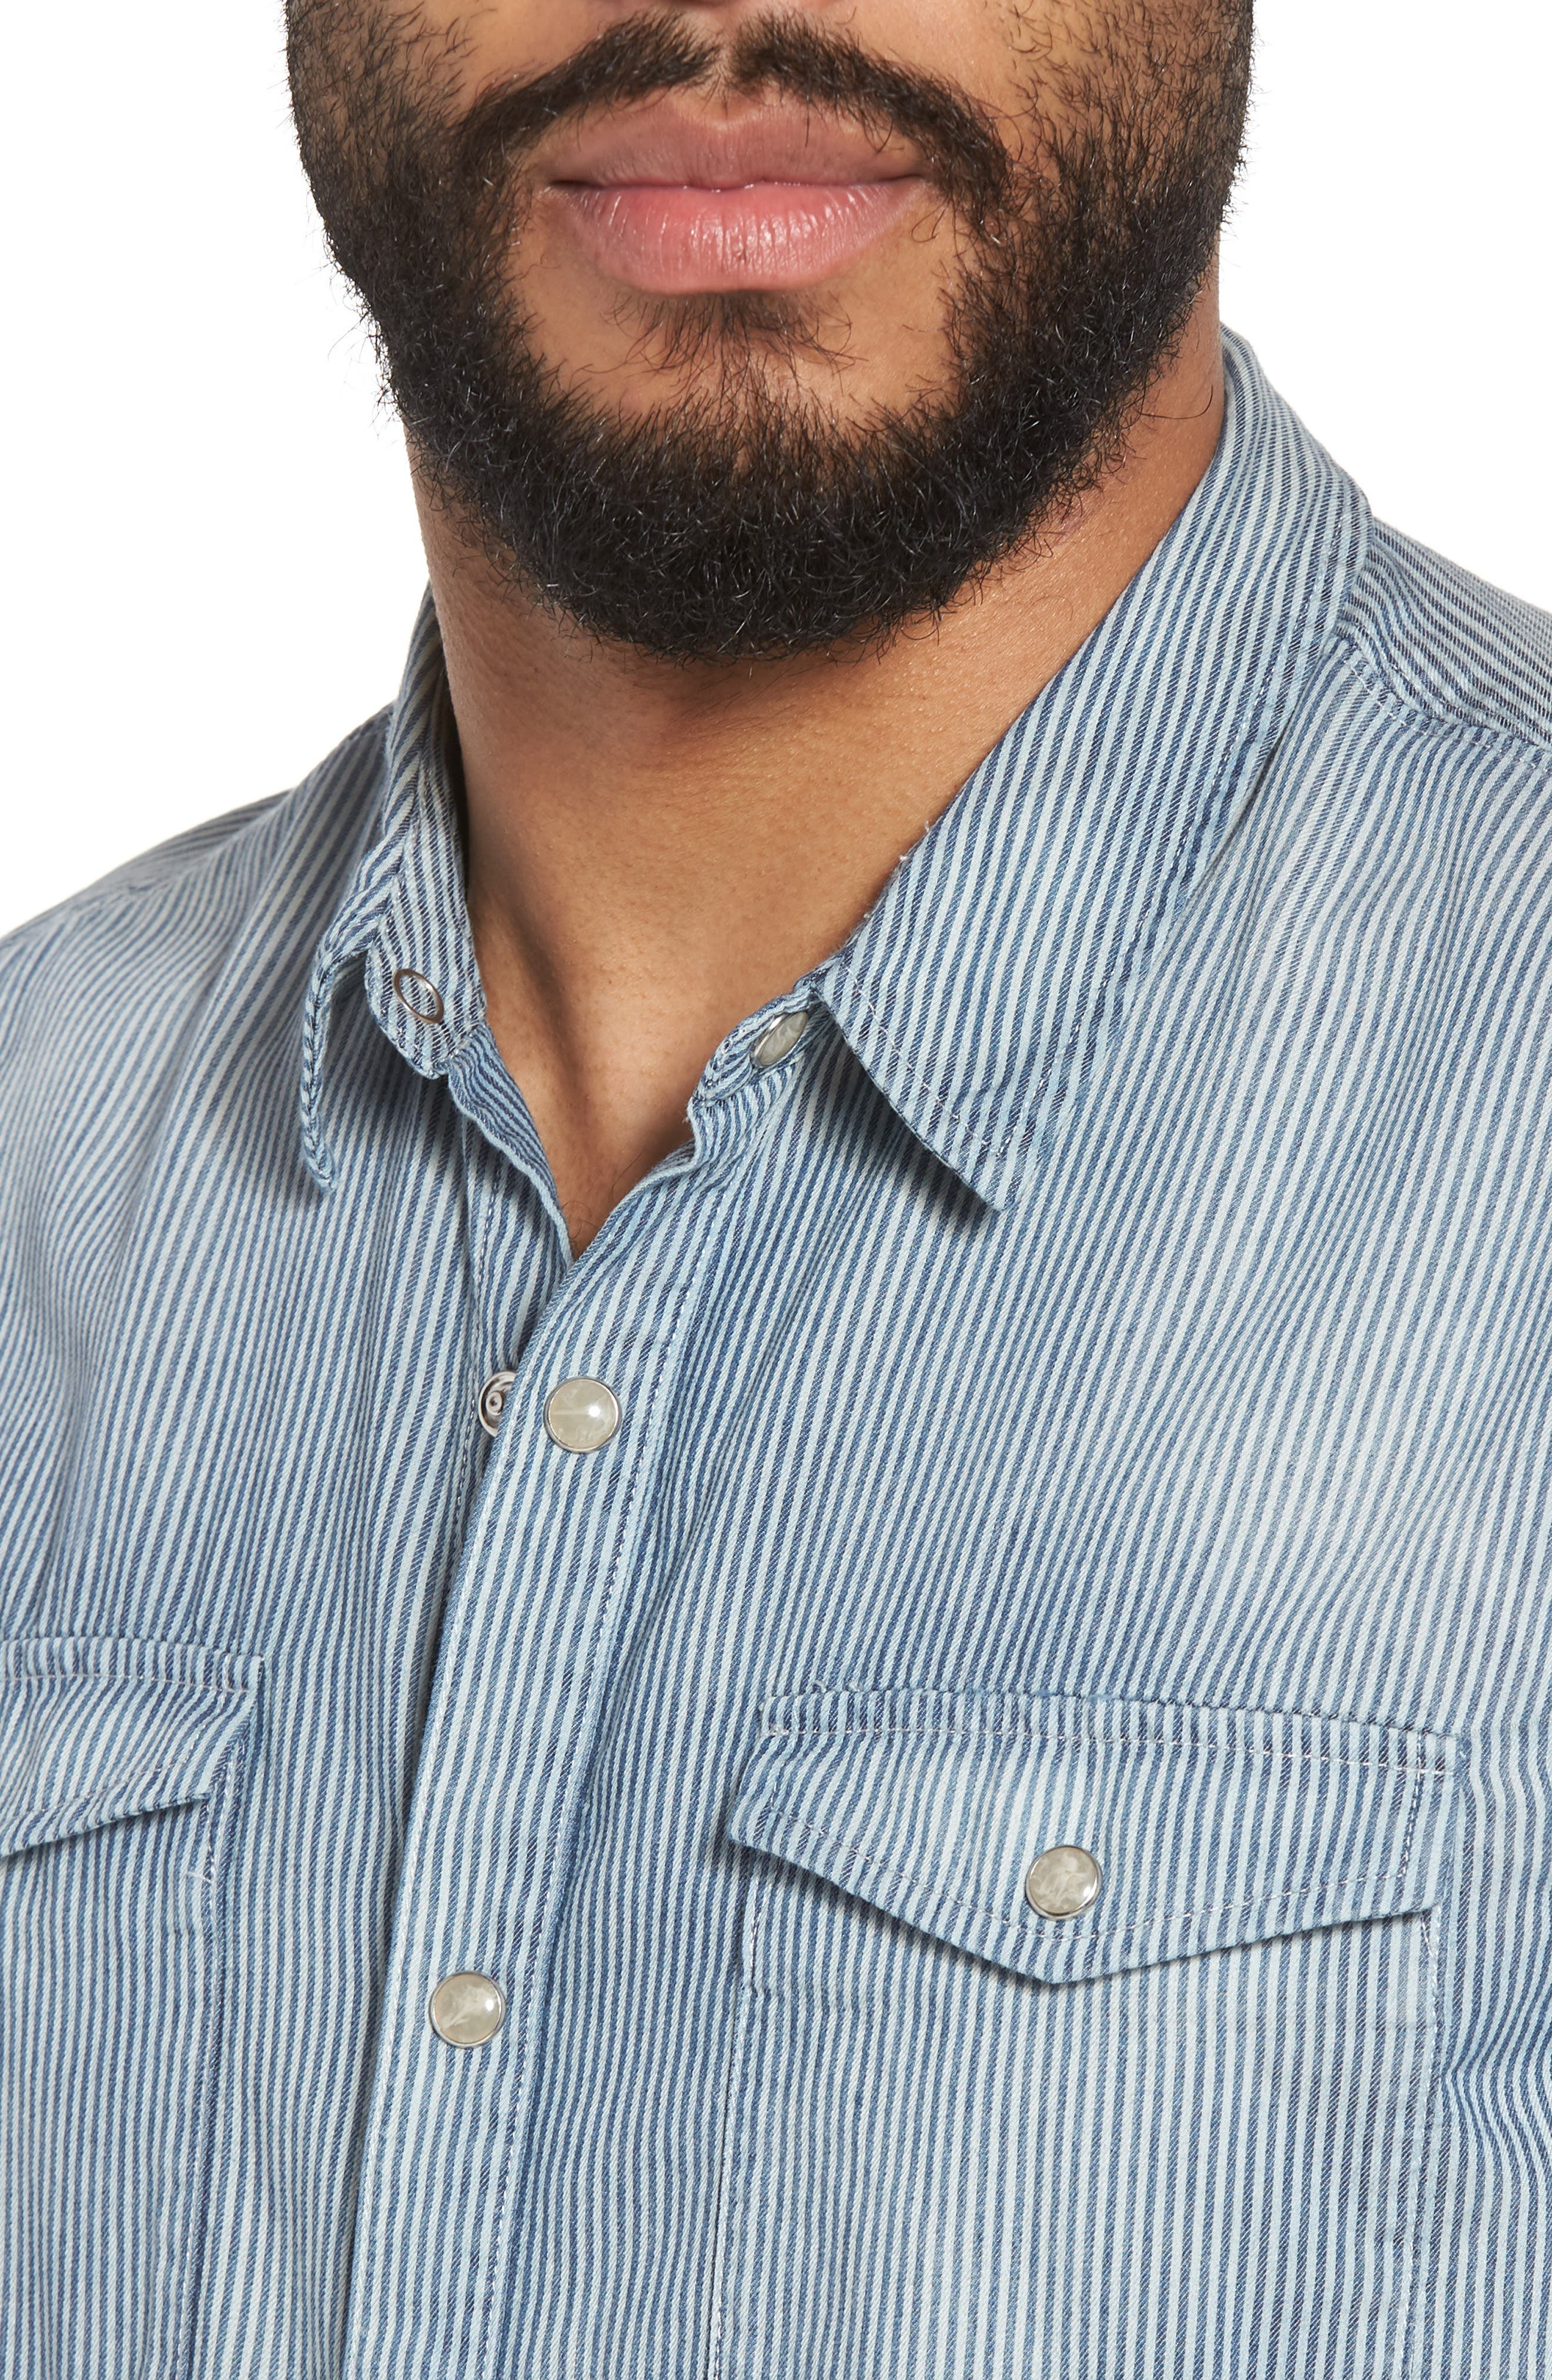 Stripe Extra Slim Fit Cotton Western Shirt,                             Alternate thumbnail 4, color,                             487